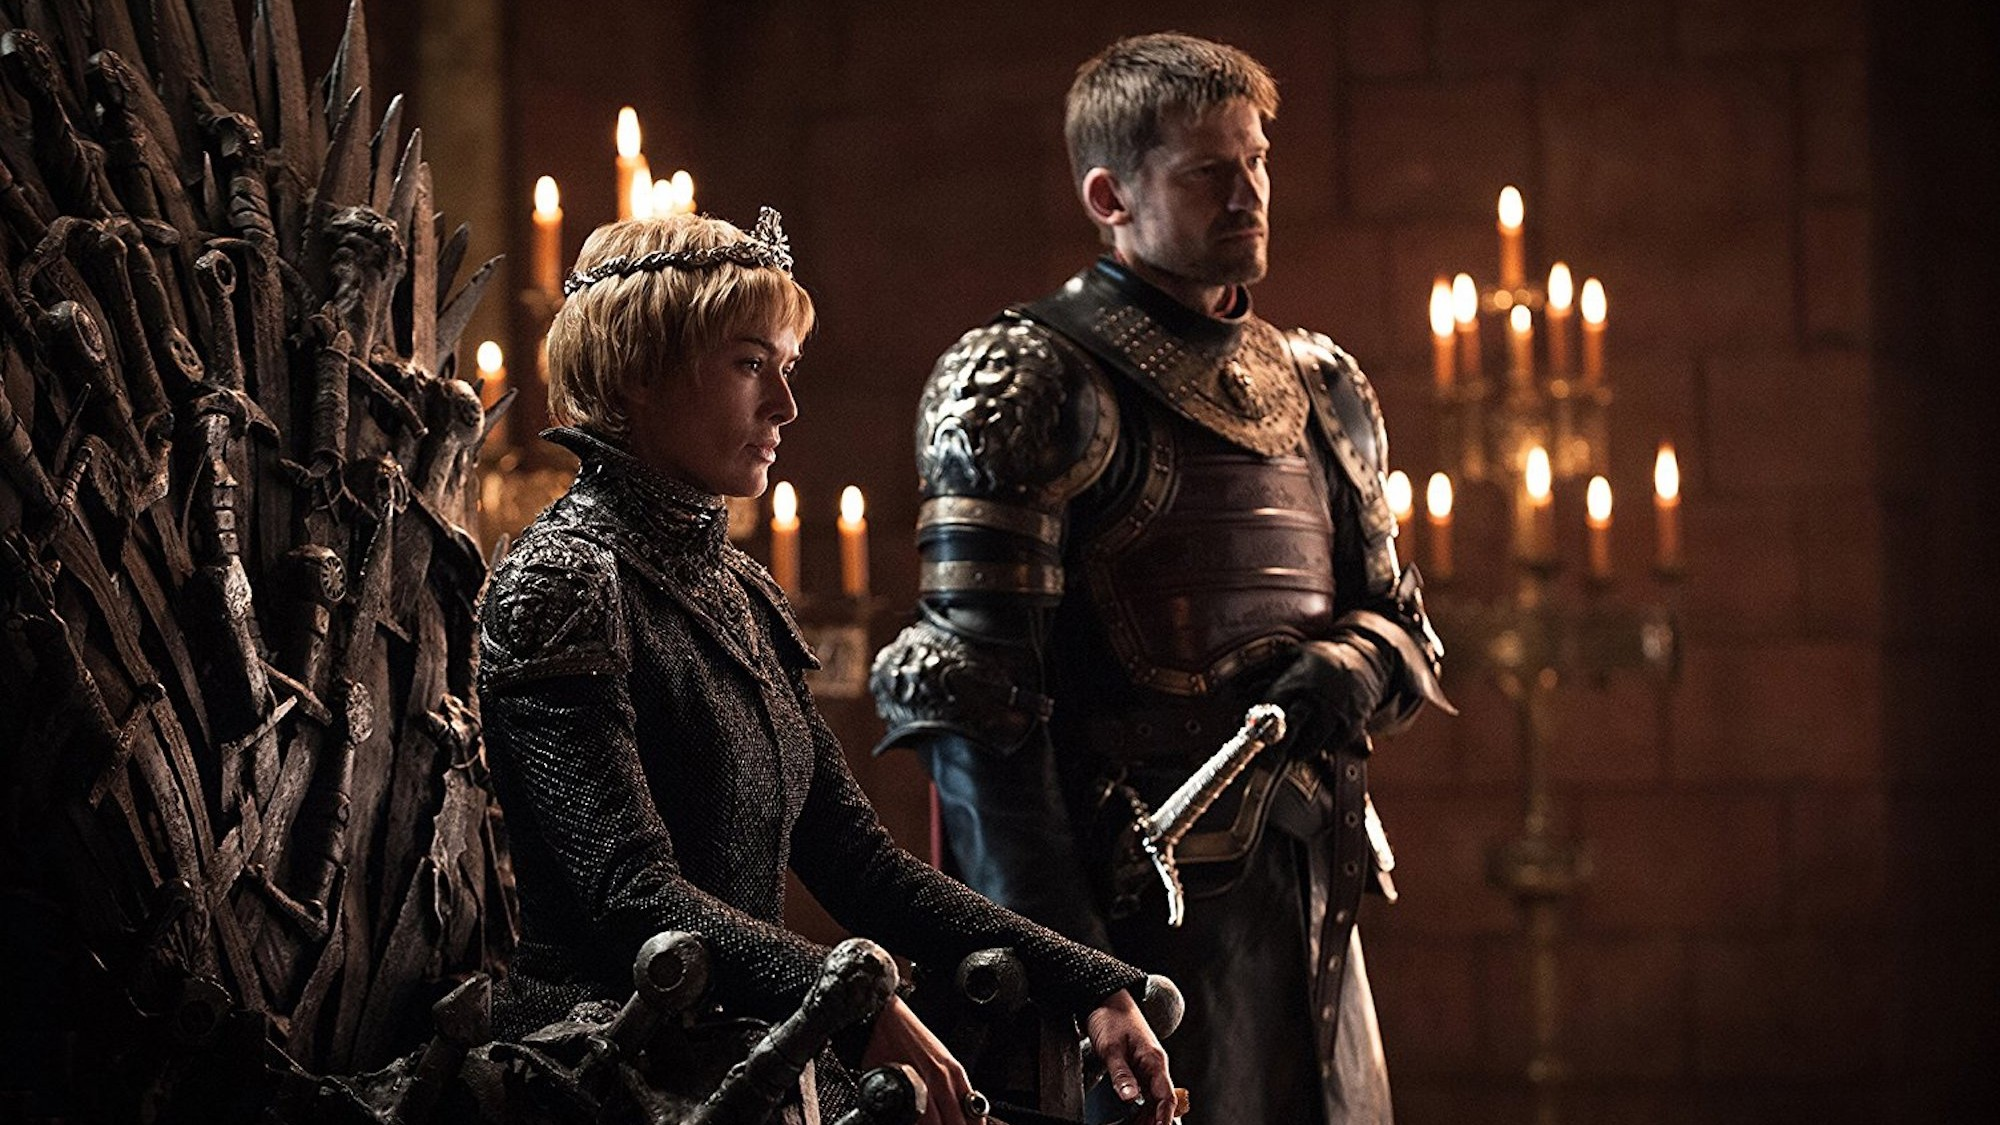 Game of Thrones' Is Literally Demanding a Blood Sacrifice